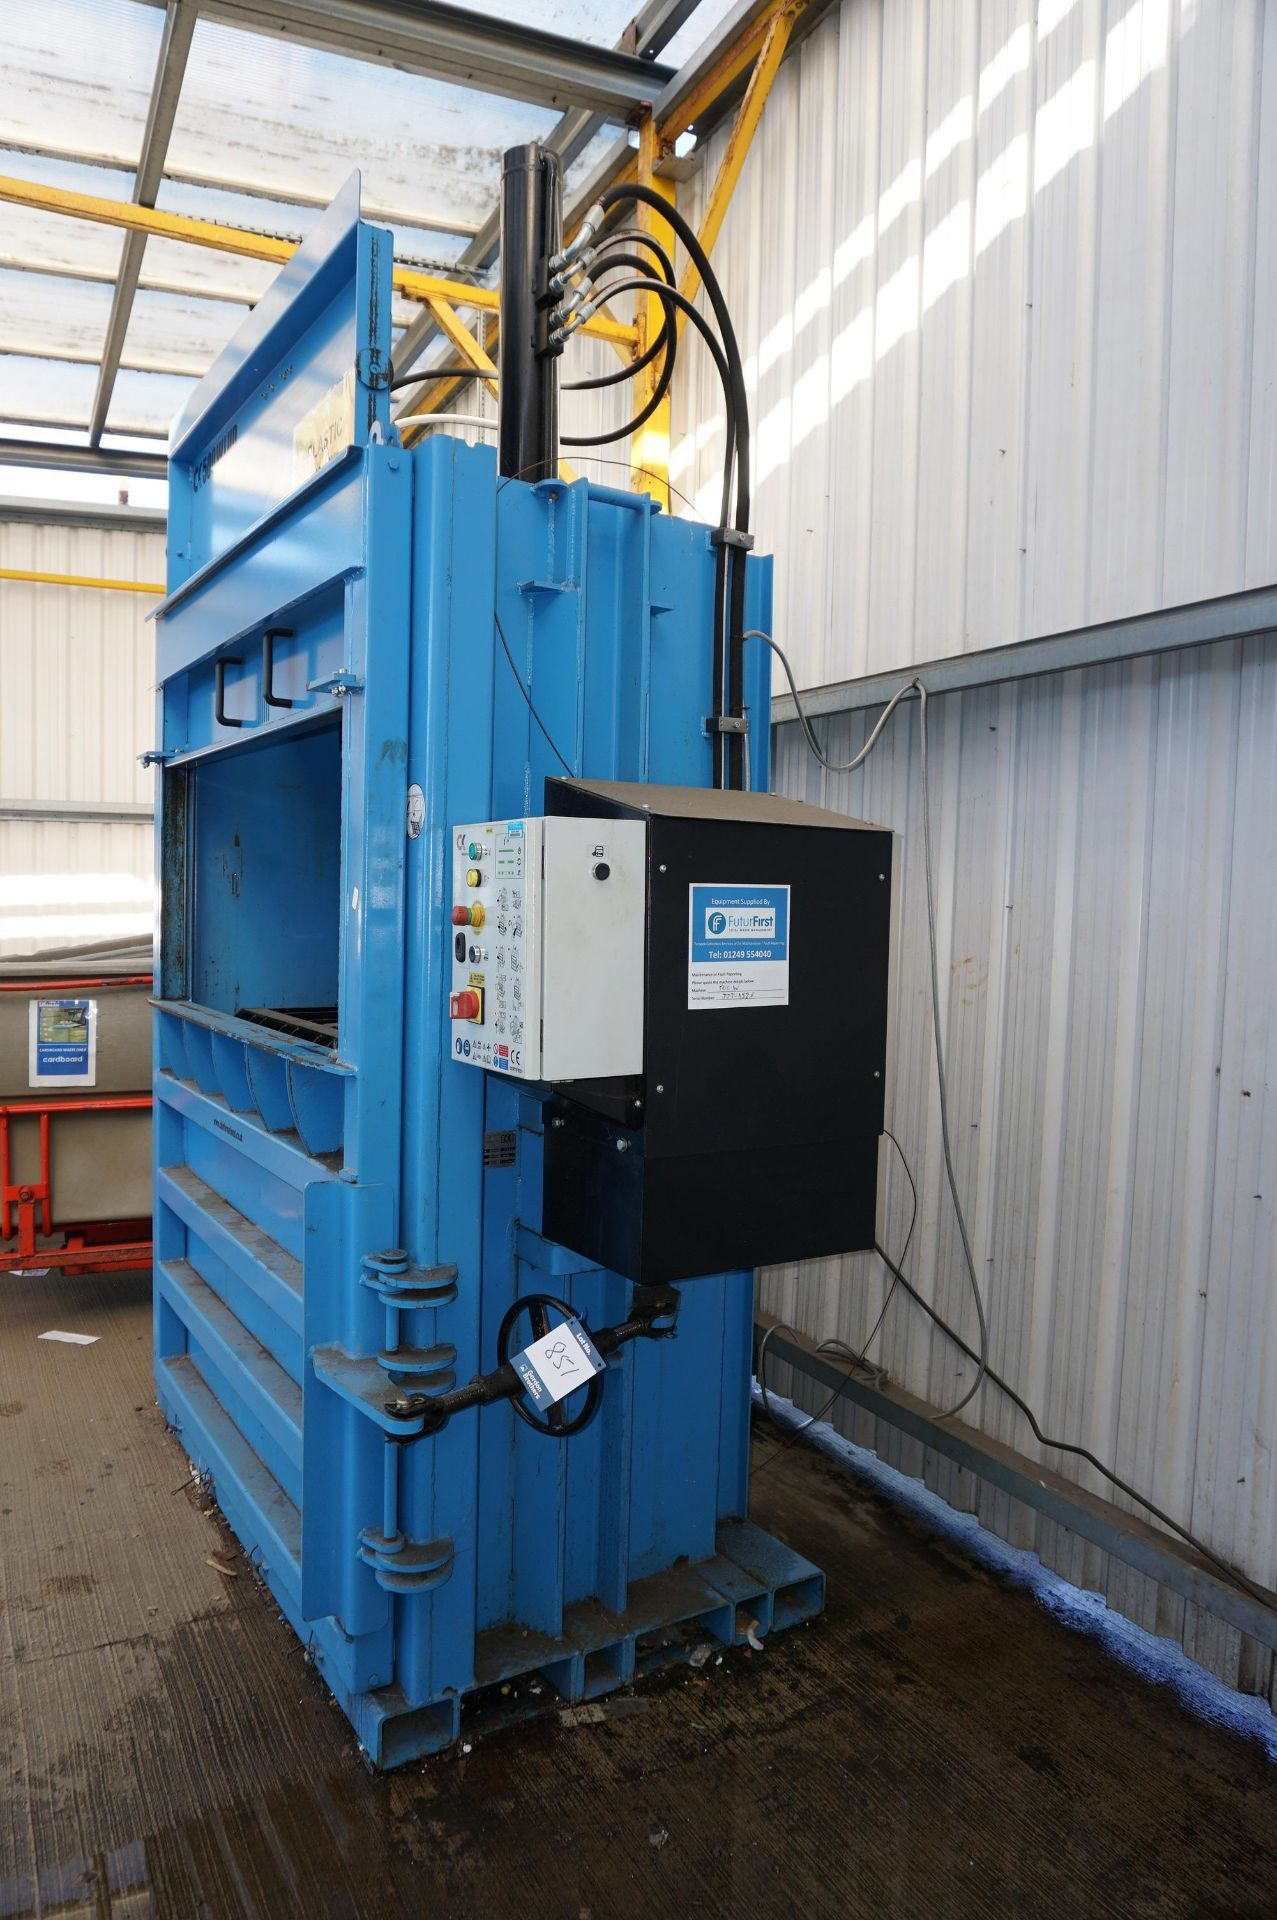 FuturFirst CK500WLUD hydraulic general waste compactor with CK international control unit - Image 2 of 5